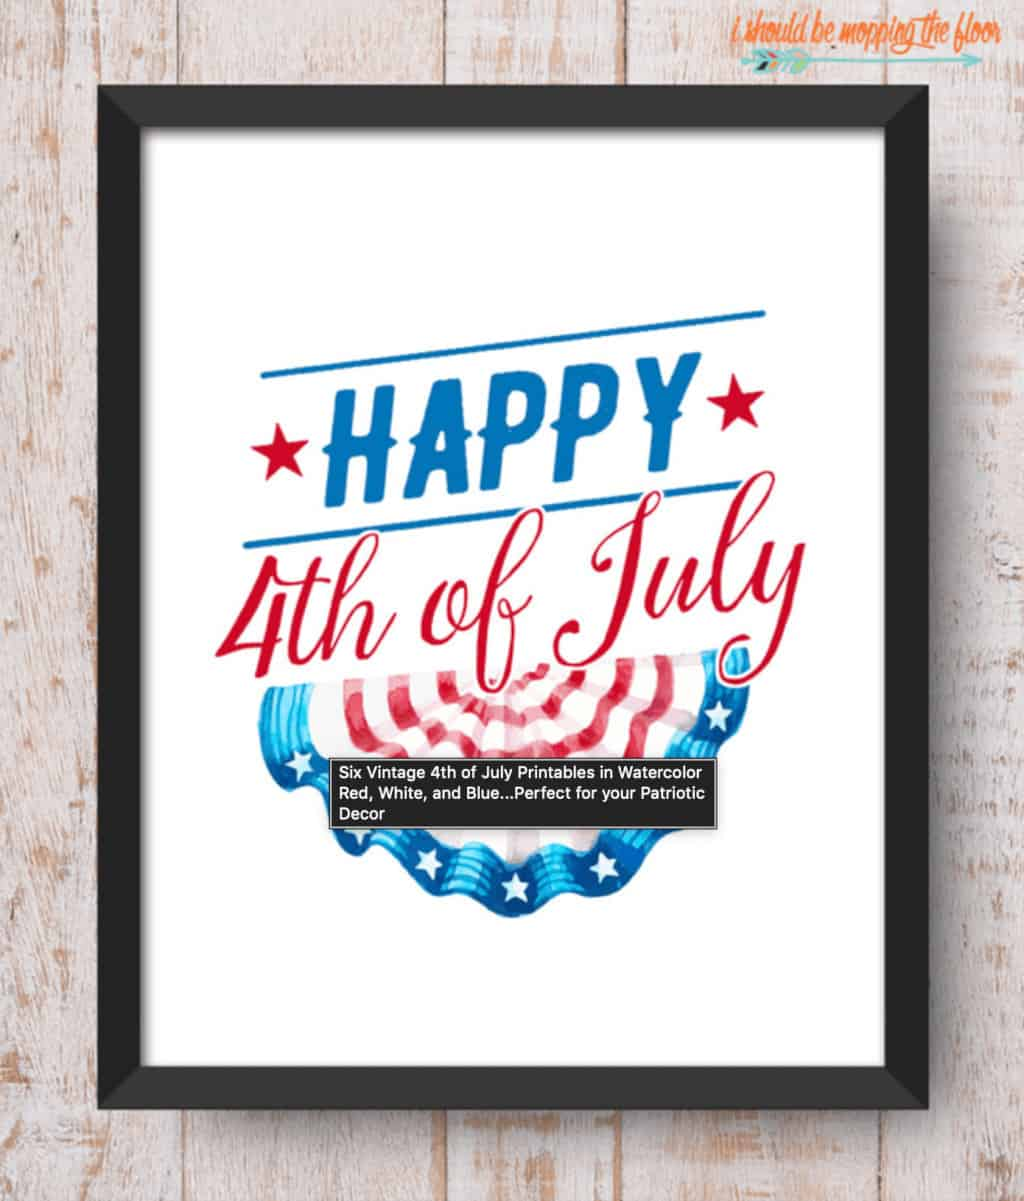 Free patriotic printable - affordable patriotic decorations for your home free printables00001